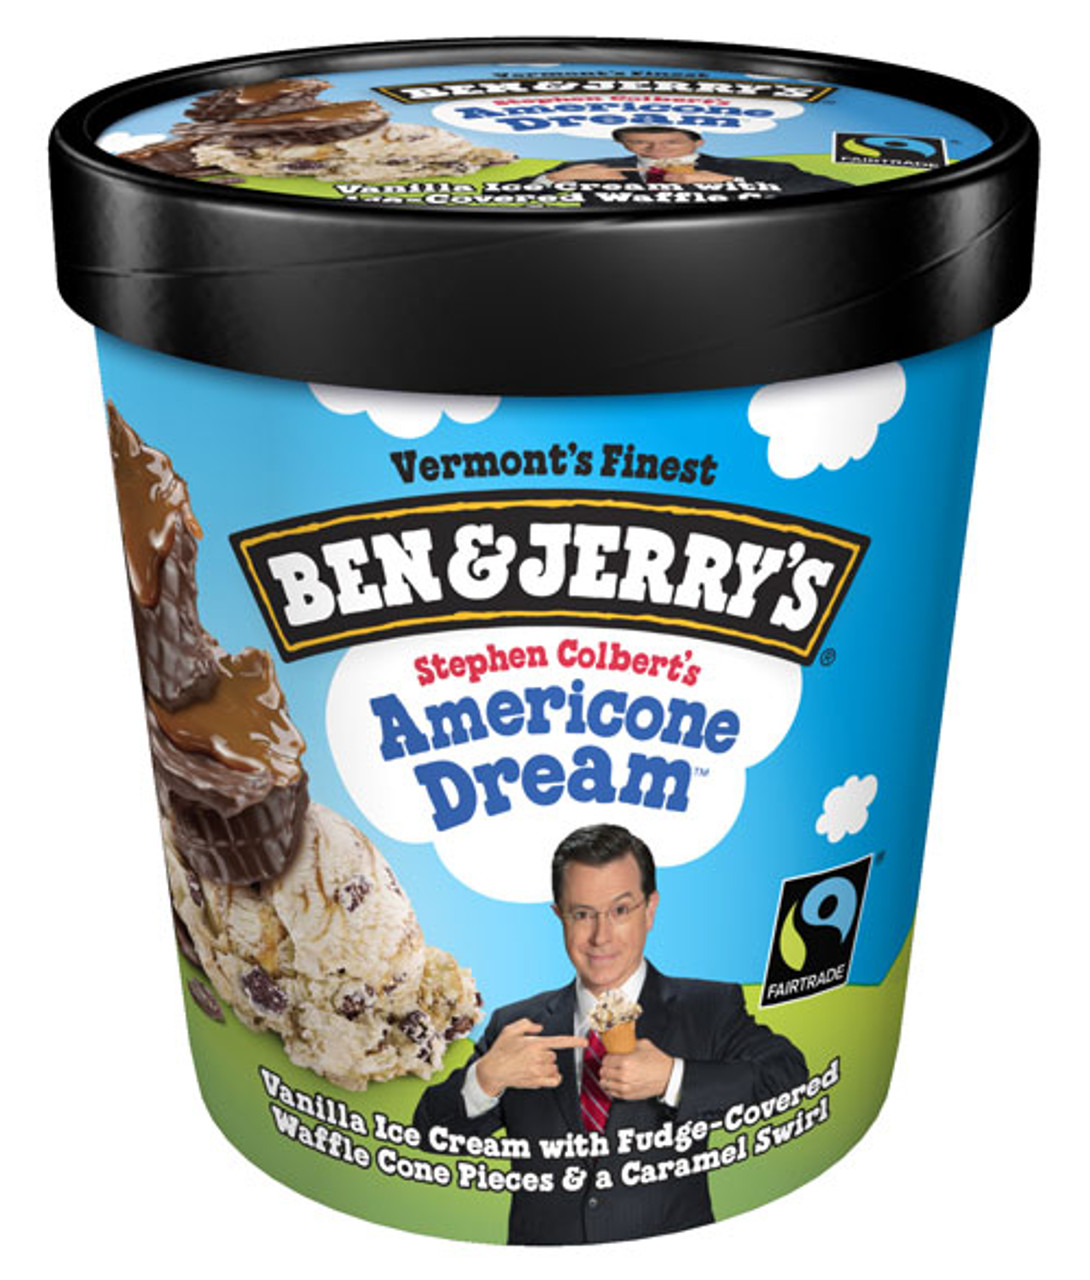 Ben Jerry S Americone Dream Stephen Colbert S Ice Cream Pint 1 Count Rocketdsd Vanilla ice cream with fudge covered waffle cone pieces and a caramel swirl. ben jerry s americone dream stephen colbert s ice cream pint 1 count